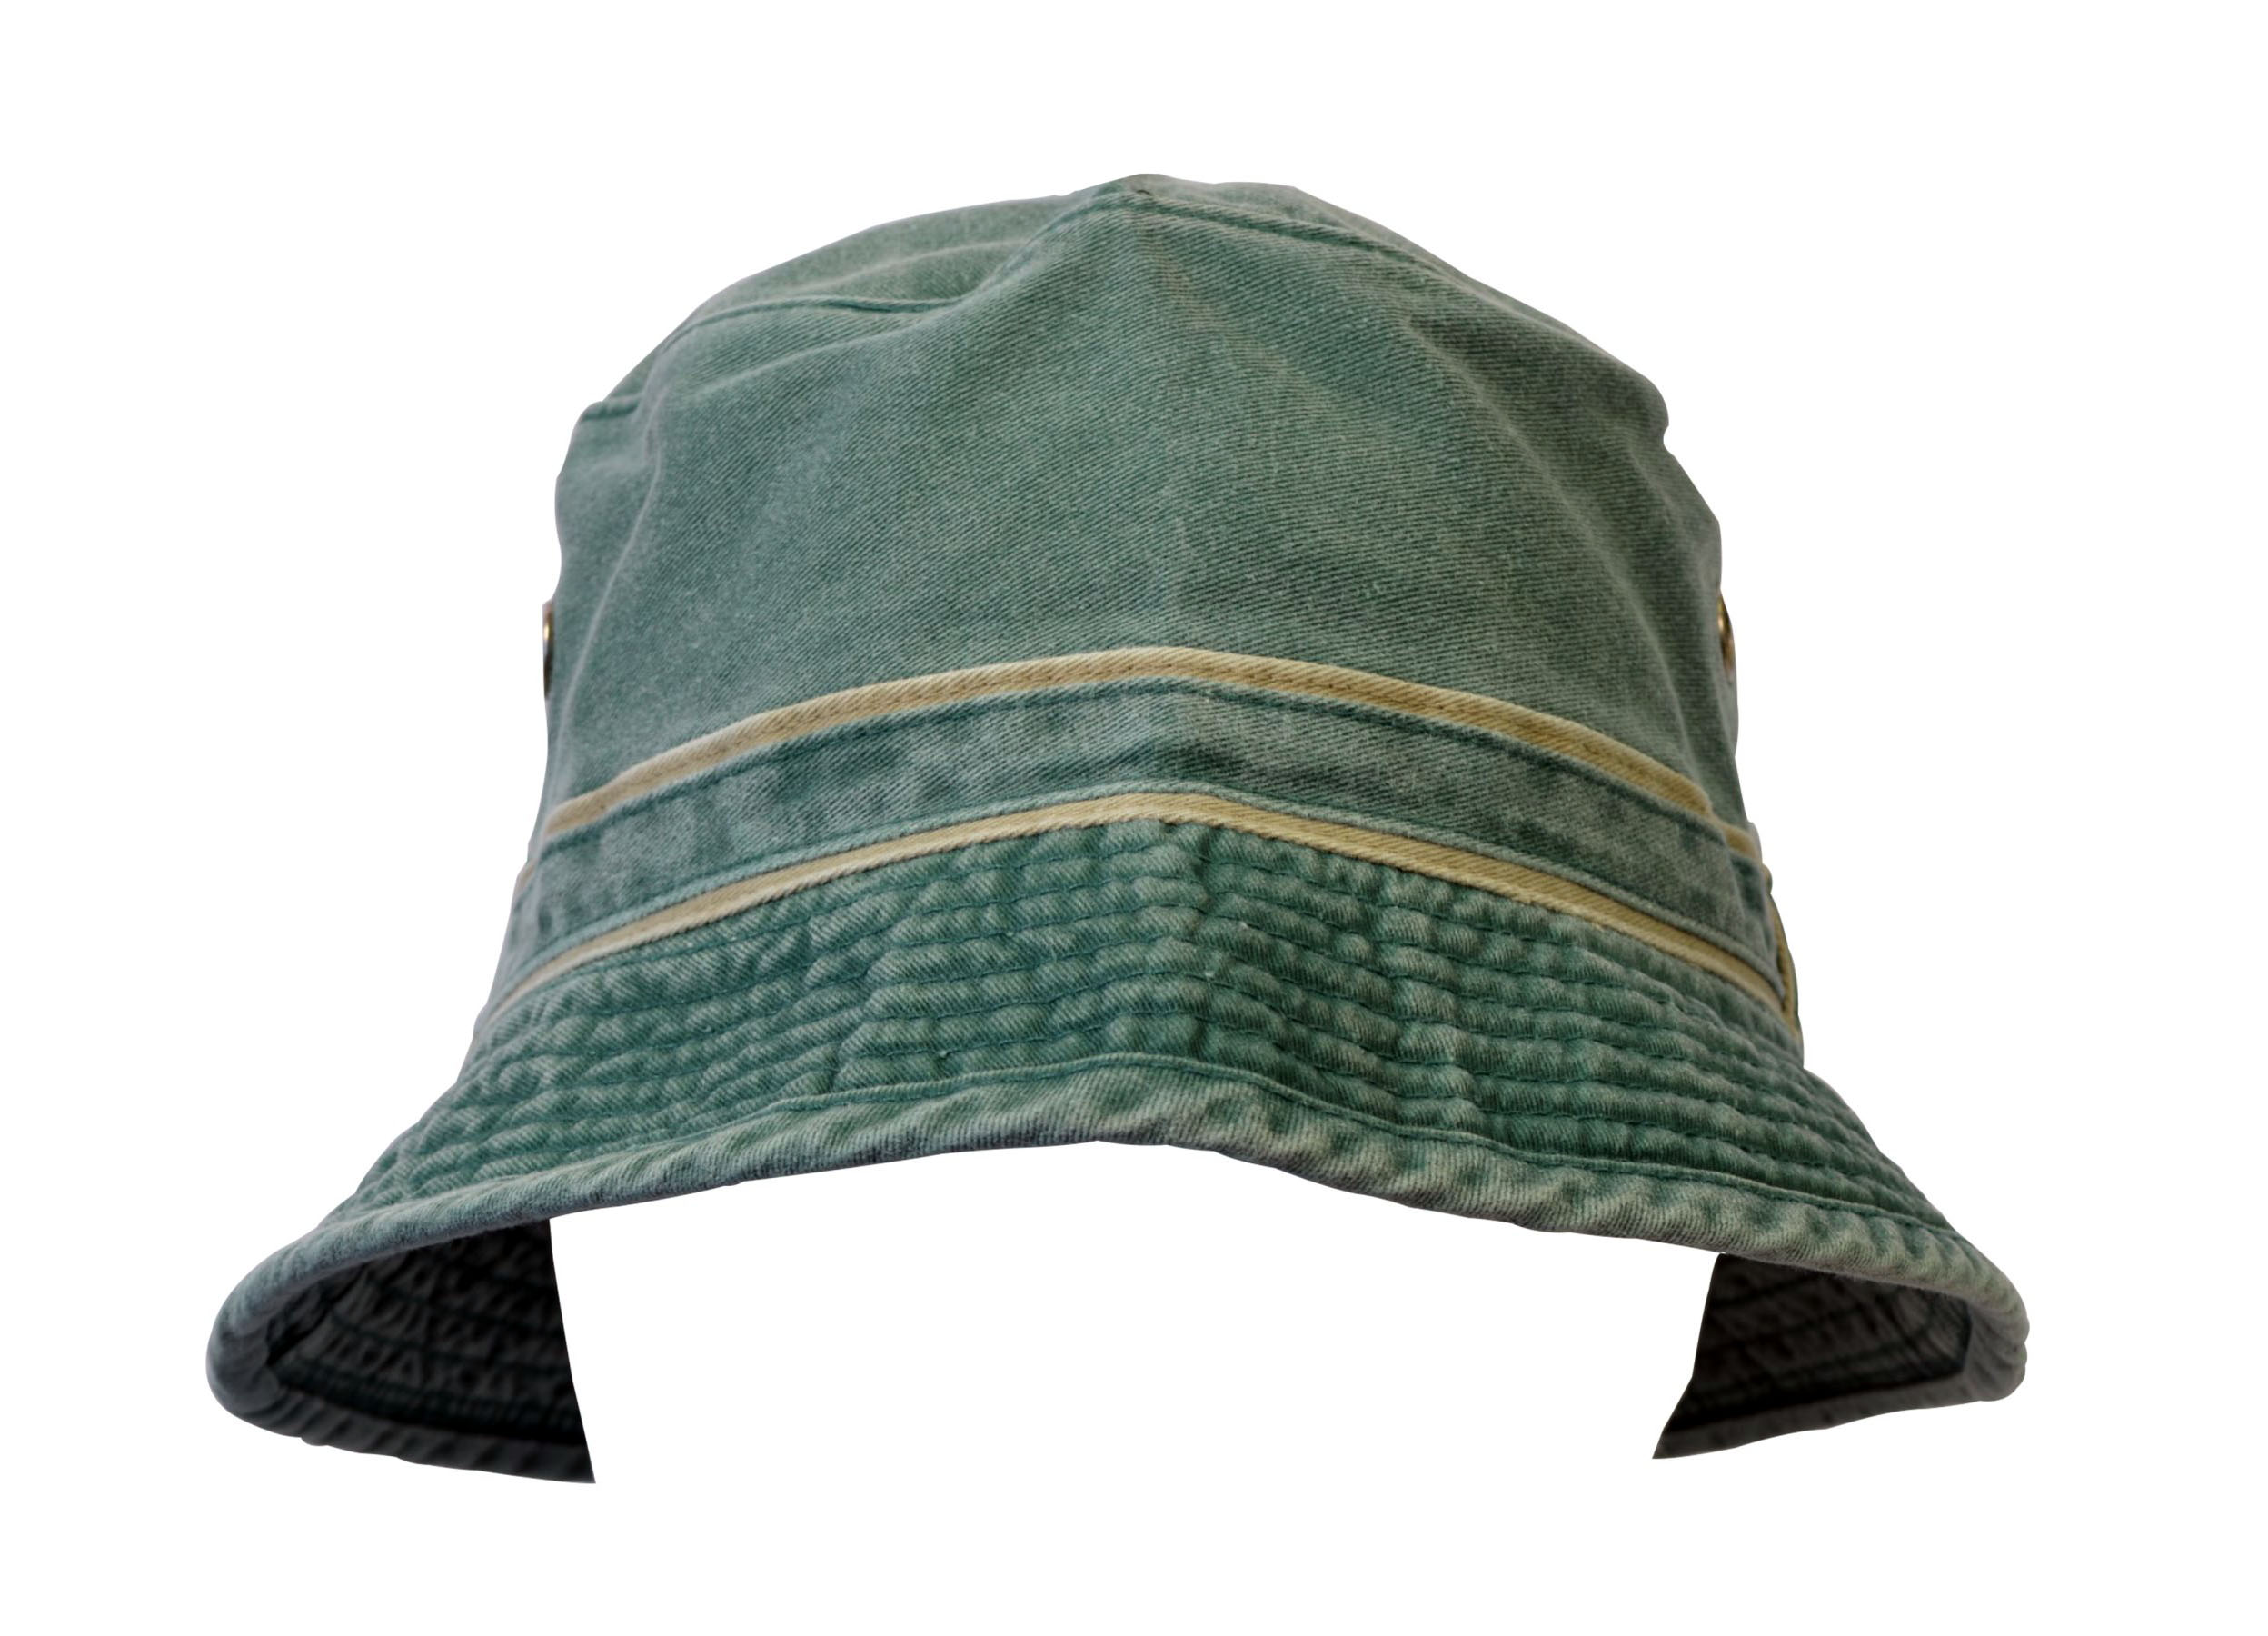 1cb7a50f Details about KC Caps® Bucket Hat Boonie Hunting Fishing Outdoor Men Cap  Washed Cotton medium